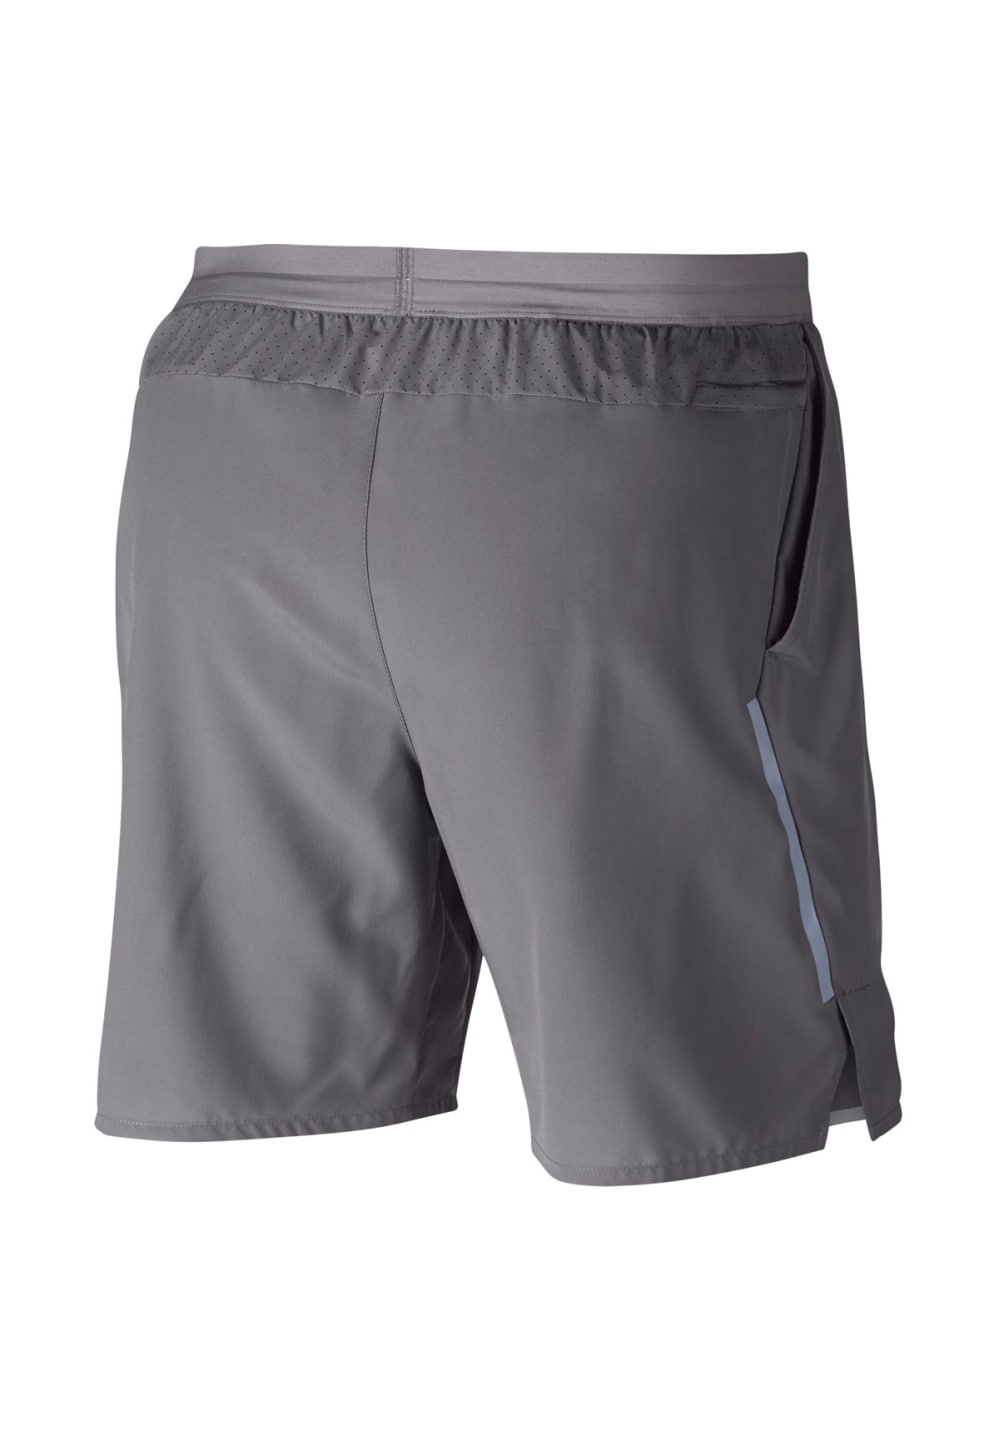 low priced 95a75 61f1a Next. Nike. Flex Stride Running Shorts - Pantalons course ...